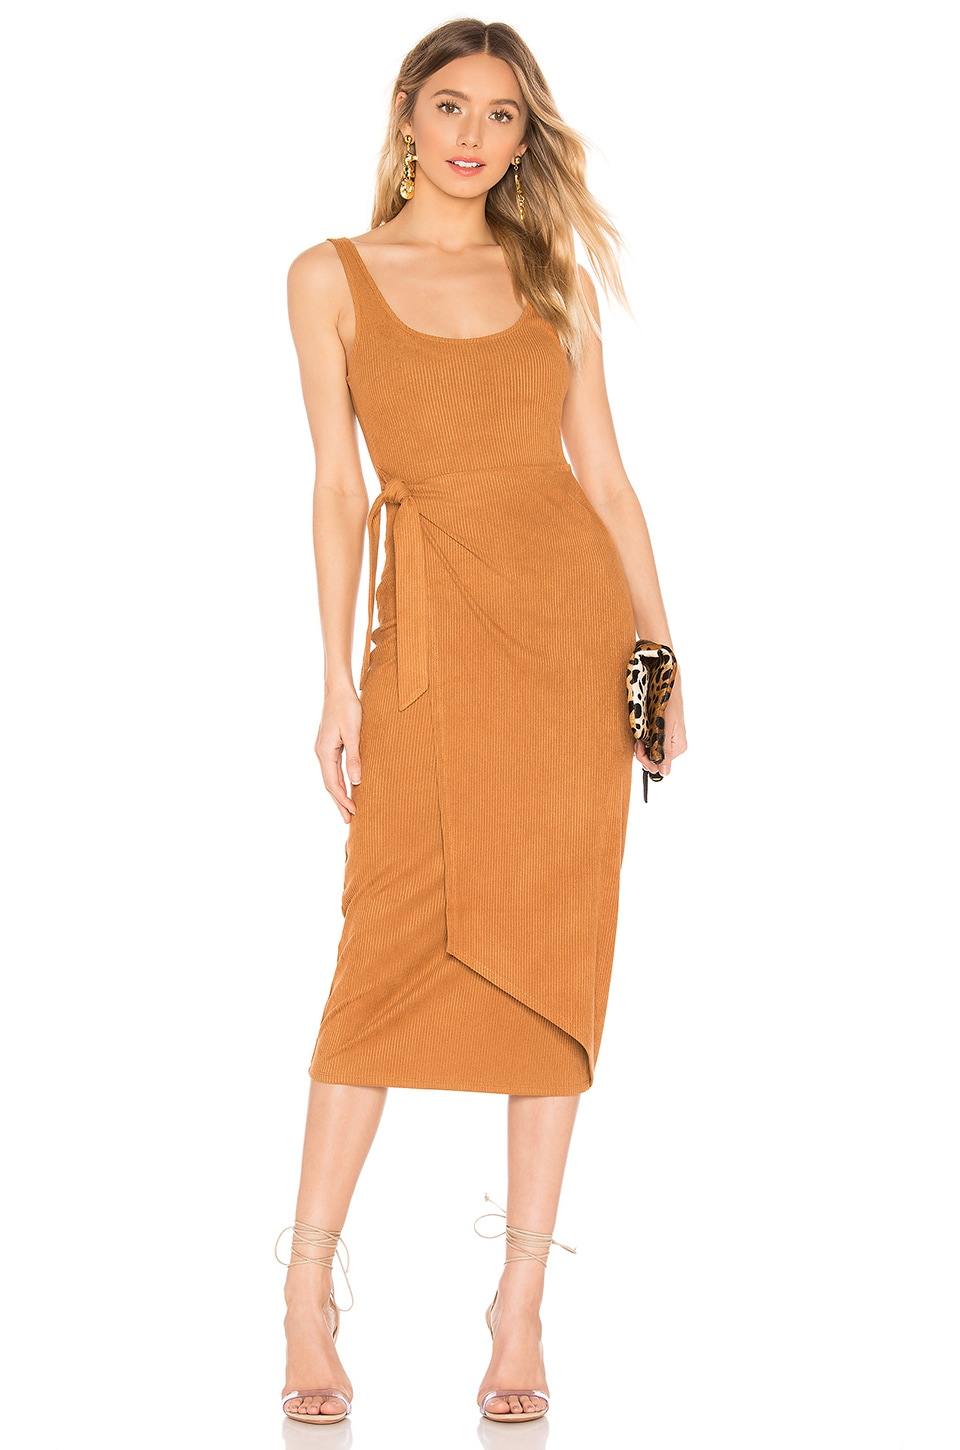 House of Harlow 1960 X REVOLVE Patricia Dress in Toffee